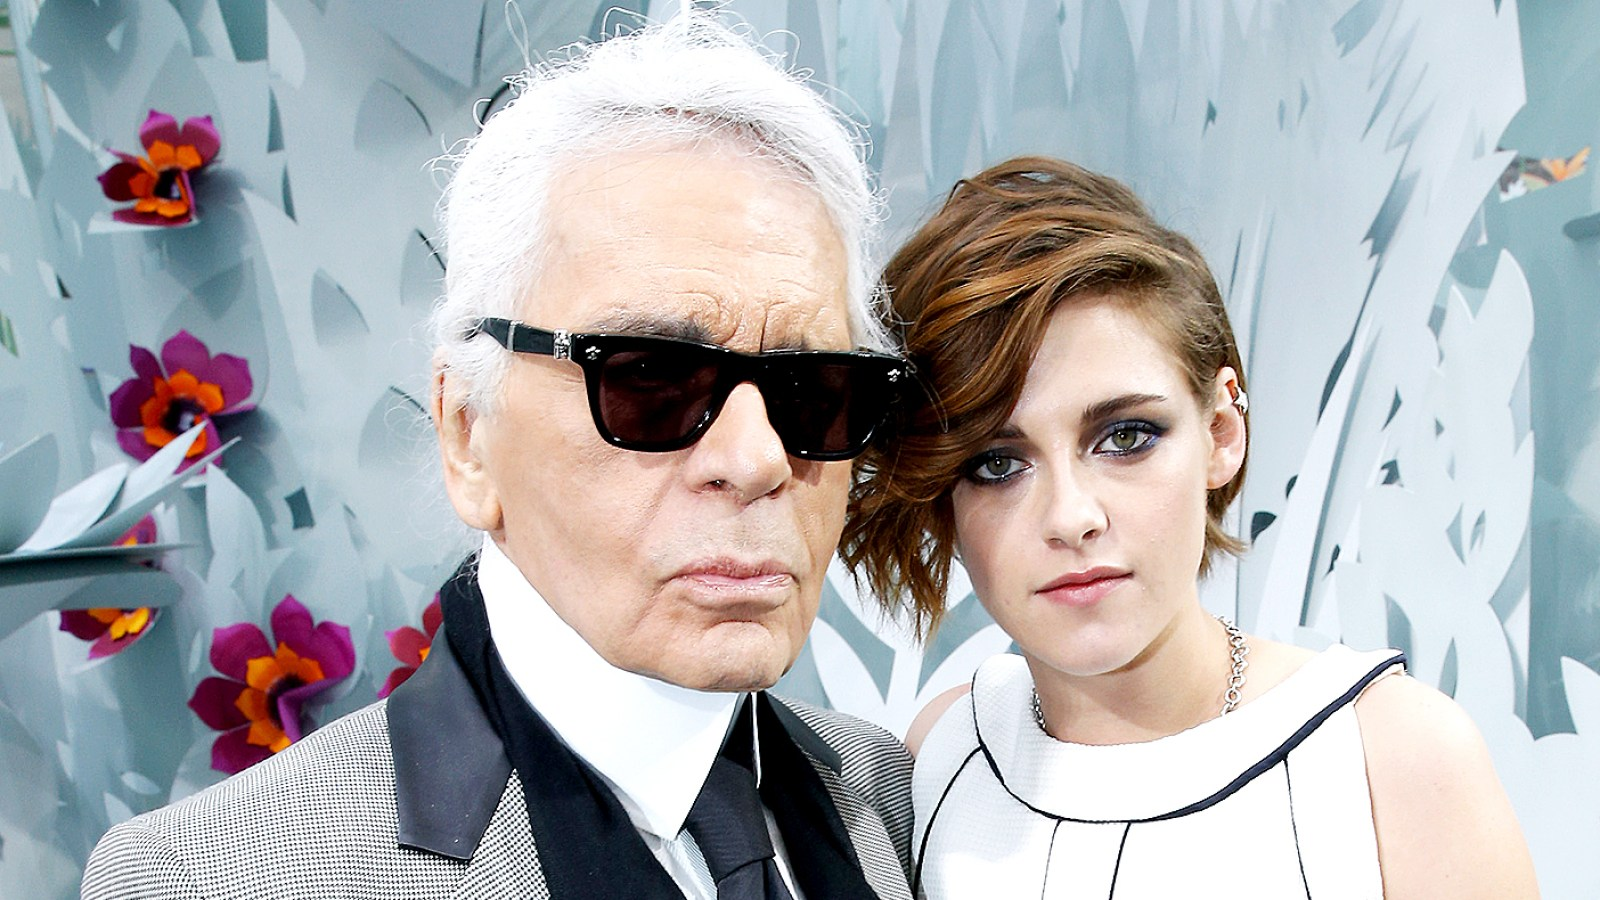 Kristen Stewart Compliments Karl Lagerfeld   He Is Who He Is for a Reason  e98296527e9f